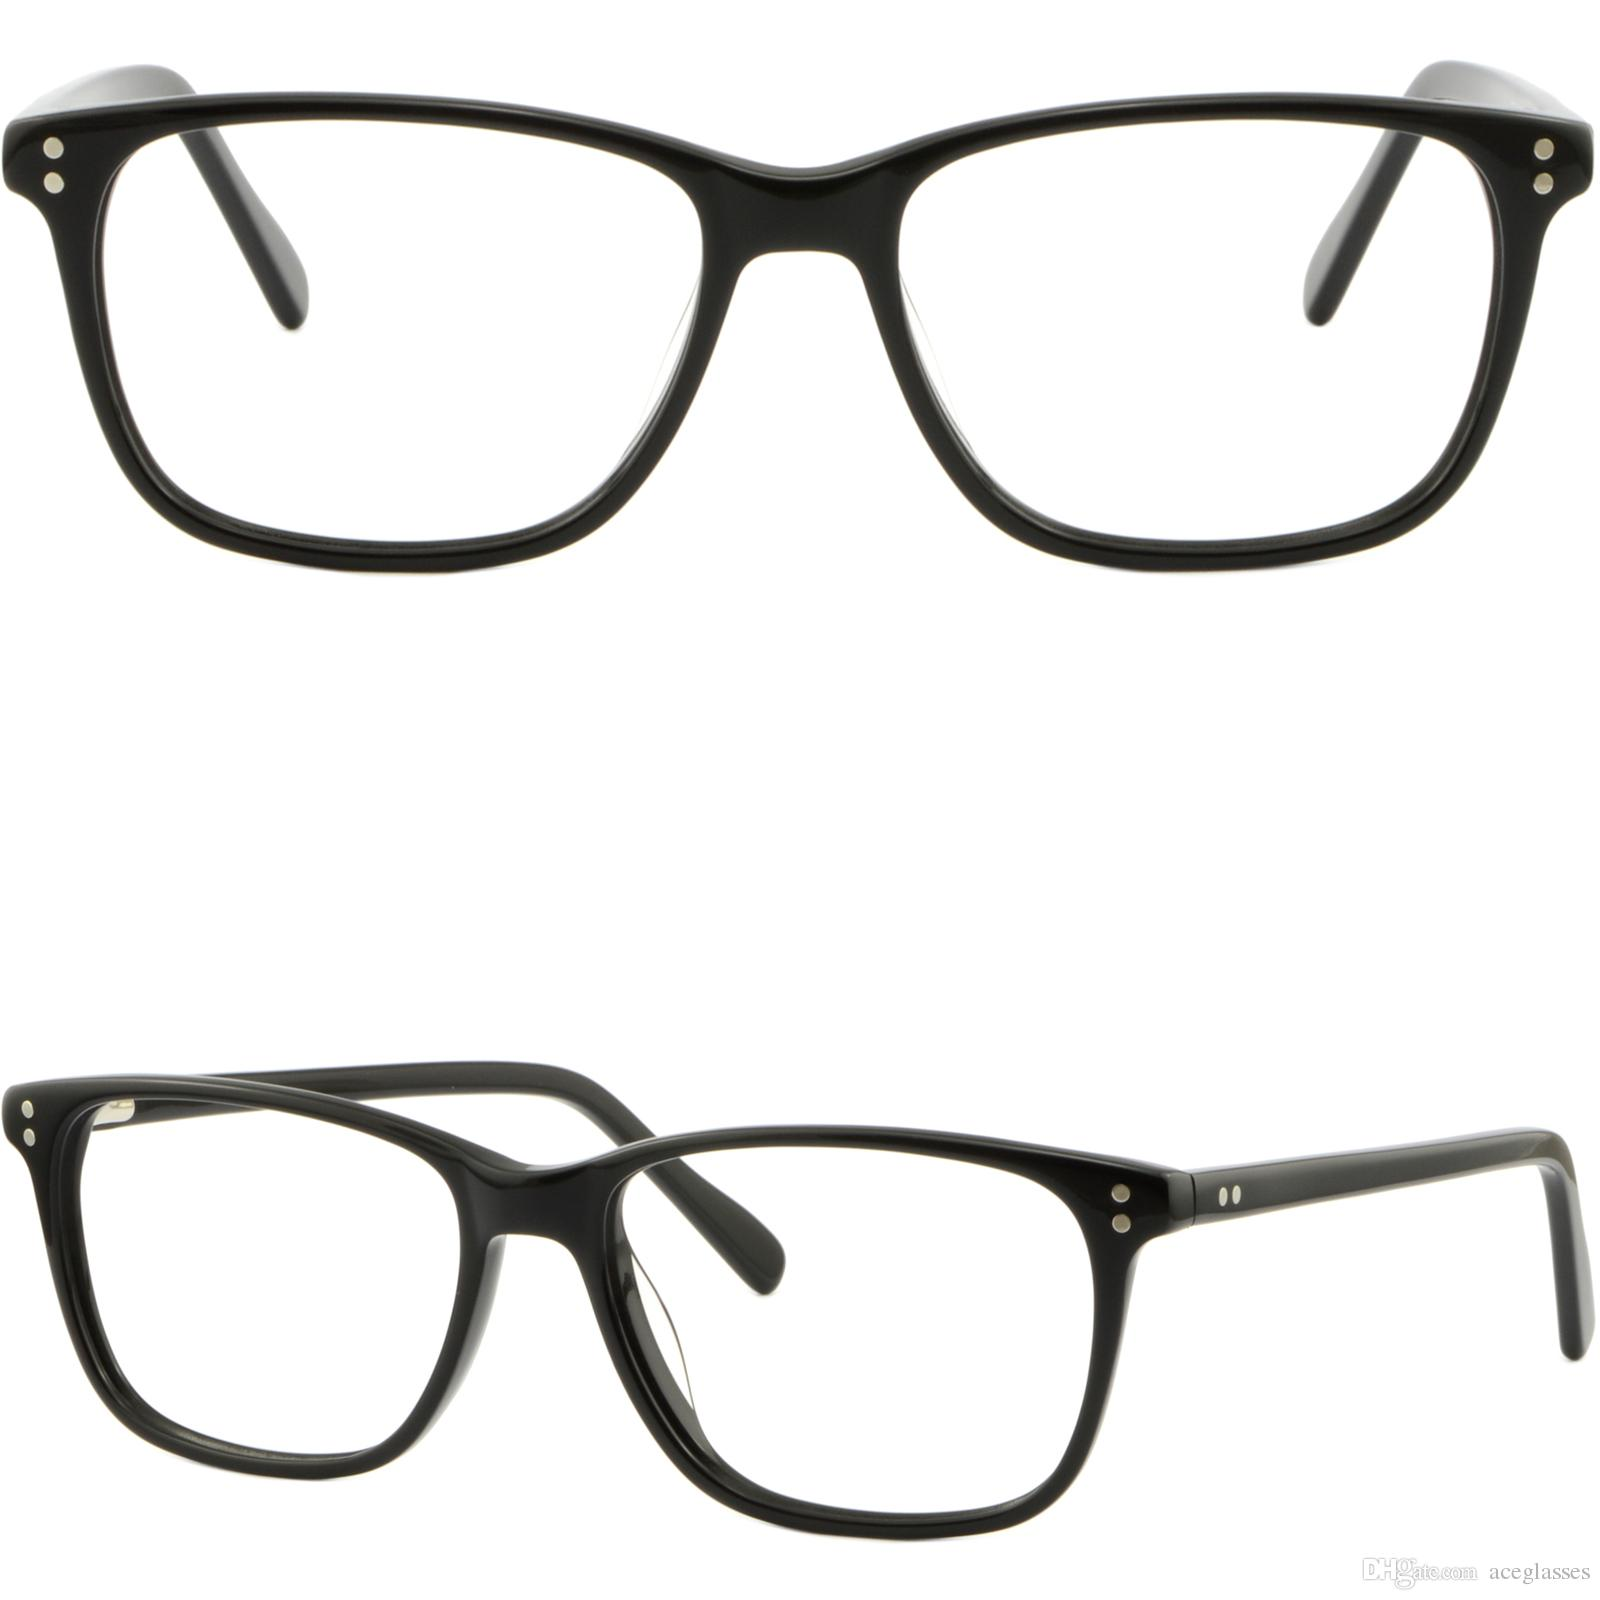 4f35bb4526 Men Women Acetate Frame Prescription Glasses Spring Hinges Rectangle Shiny  Black Glasses Frame Online with  43.06 Piece on Aceglasses s Store